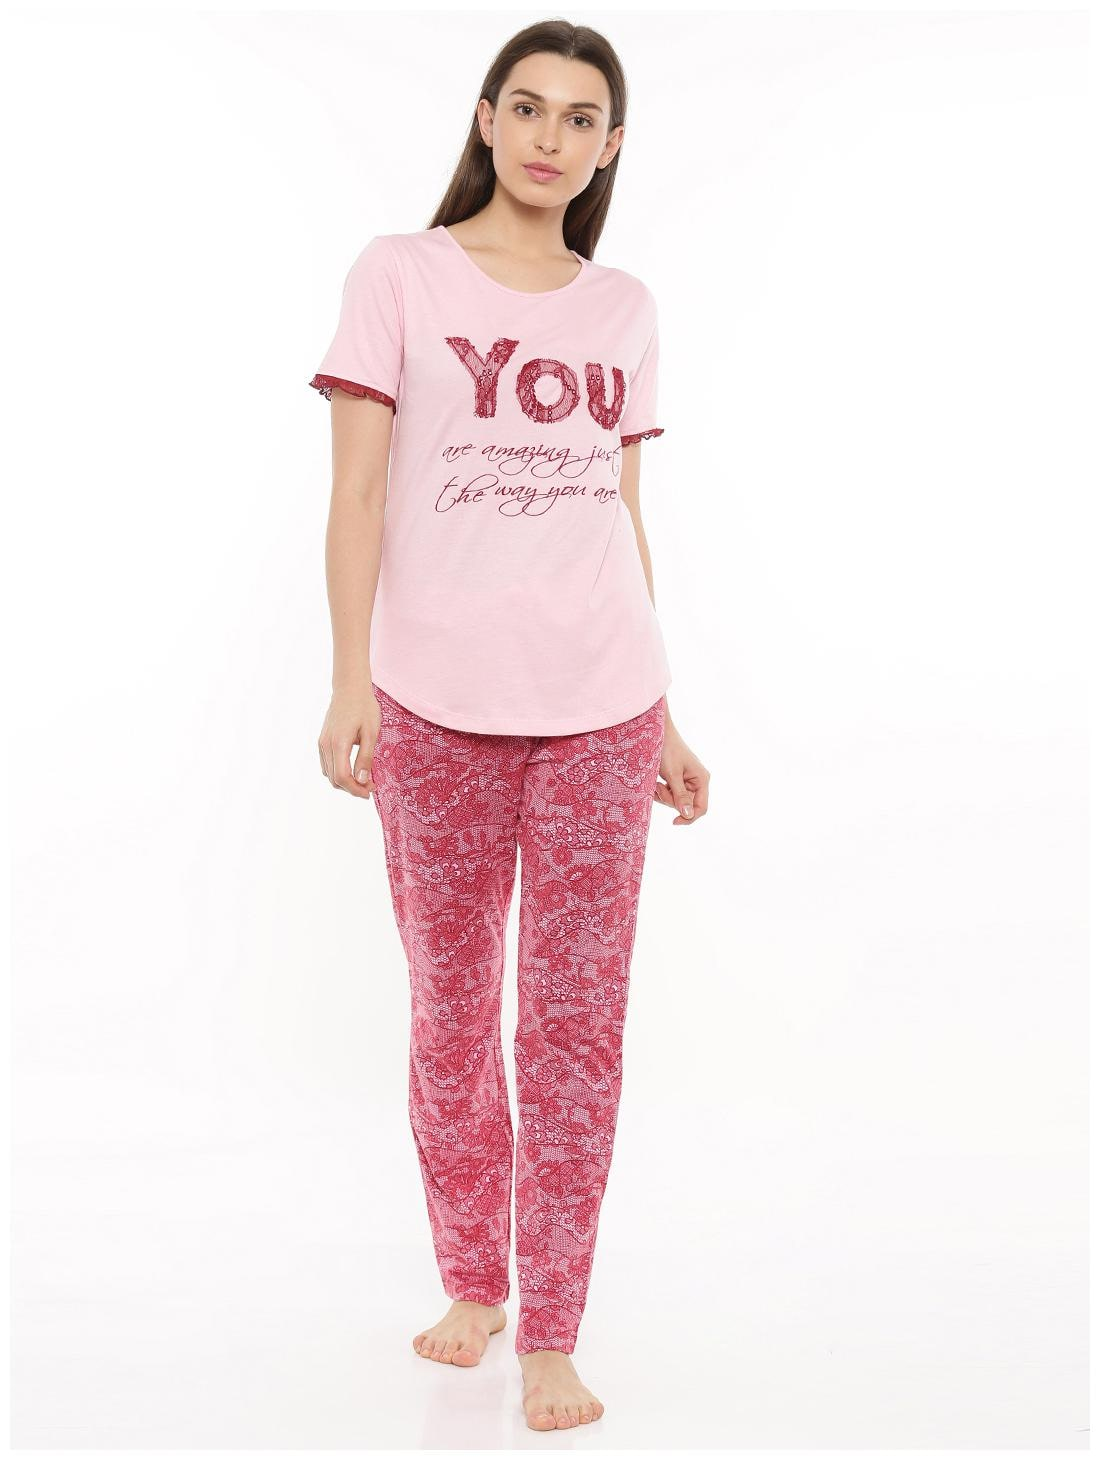 https   assetscdn1.paytm.com images catalog product . Mystere Paris Cotton  Night Gown Printed Nightwear Pink ... 2291d0722